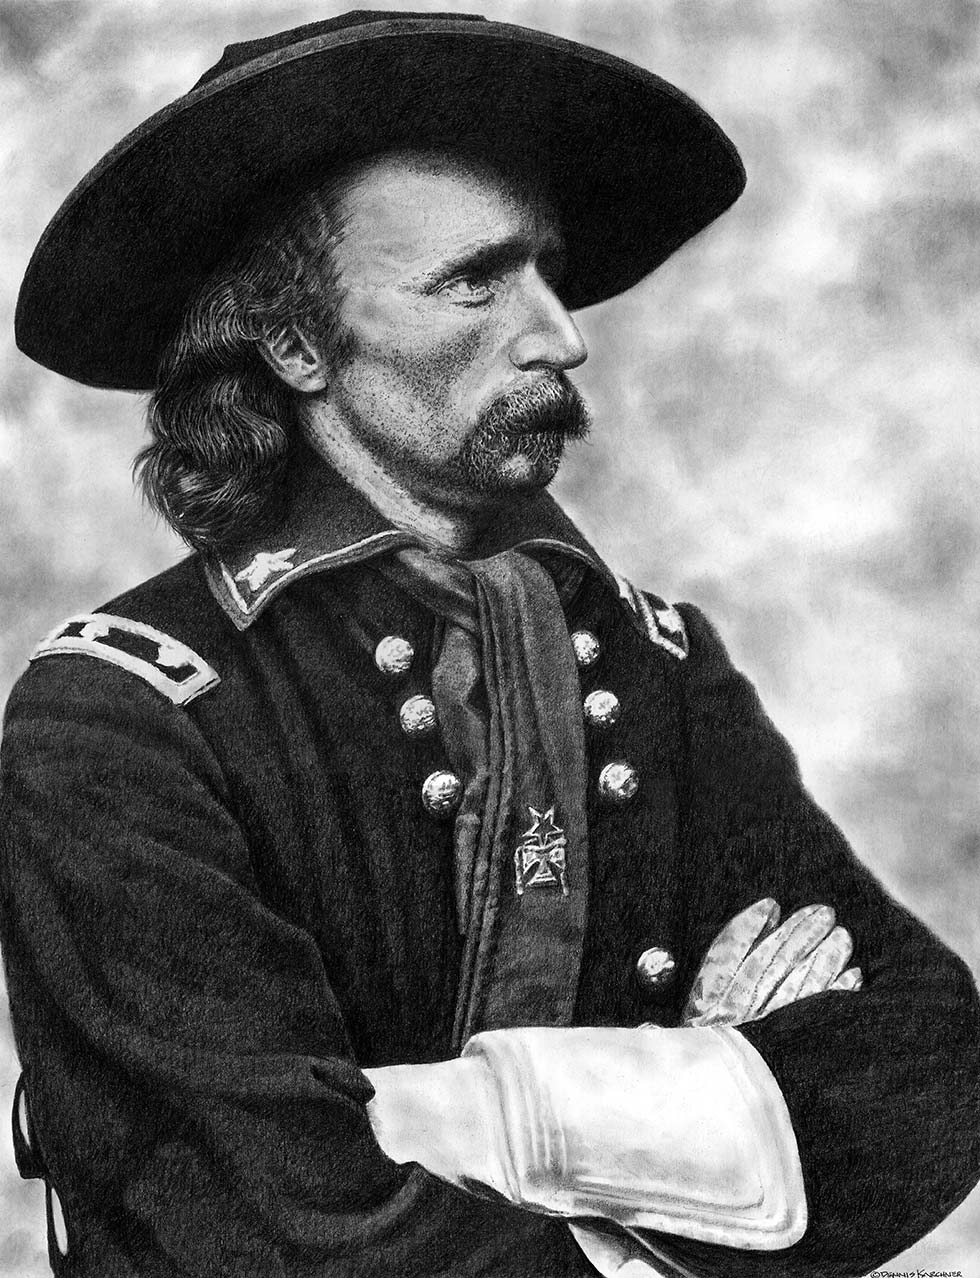 The Yankee Swashbuckler – George Custer